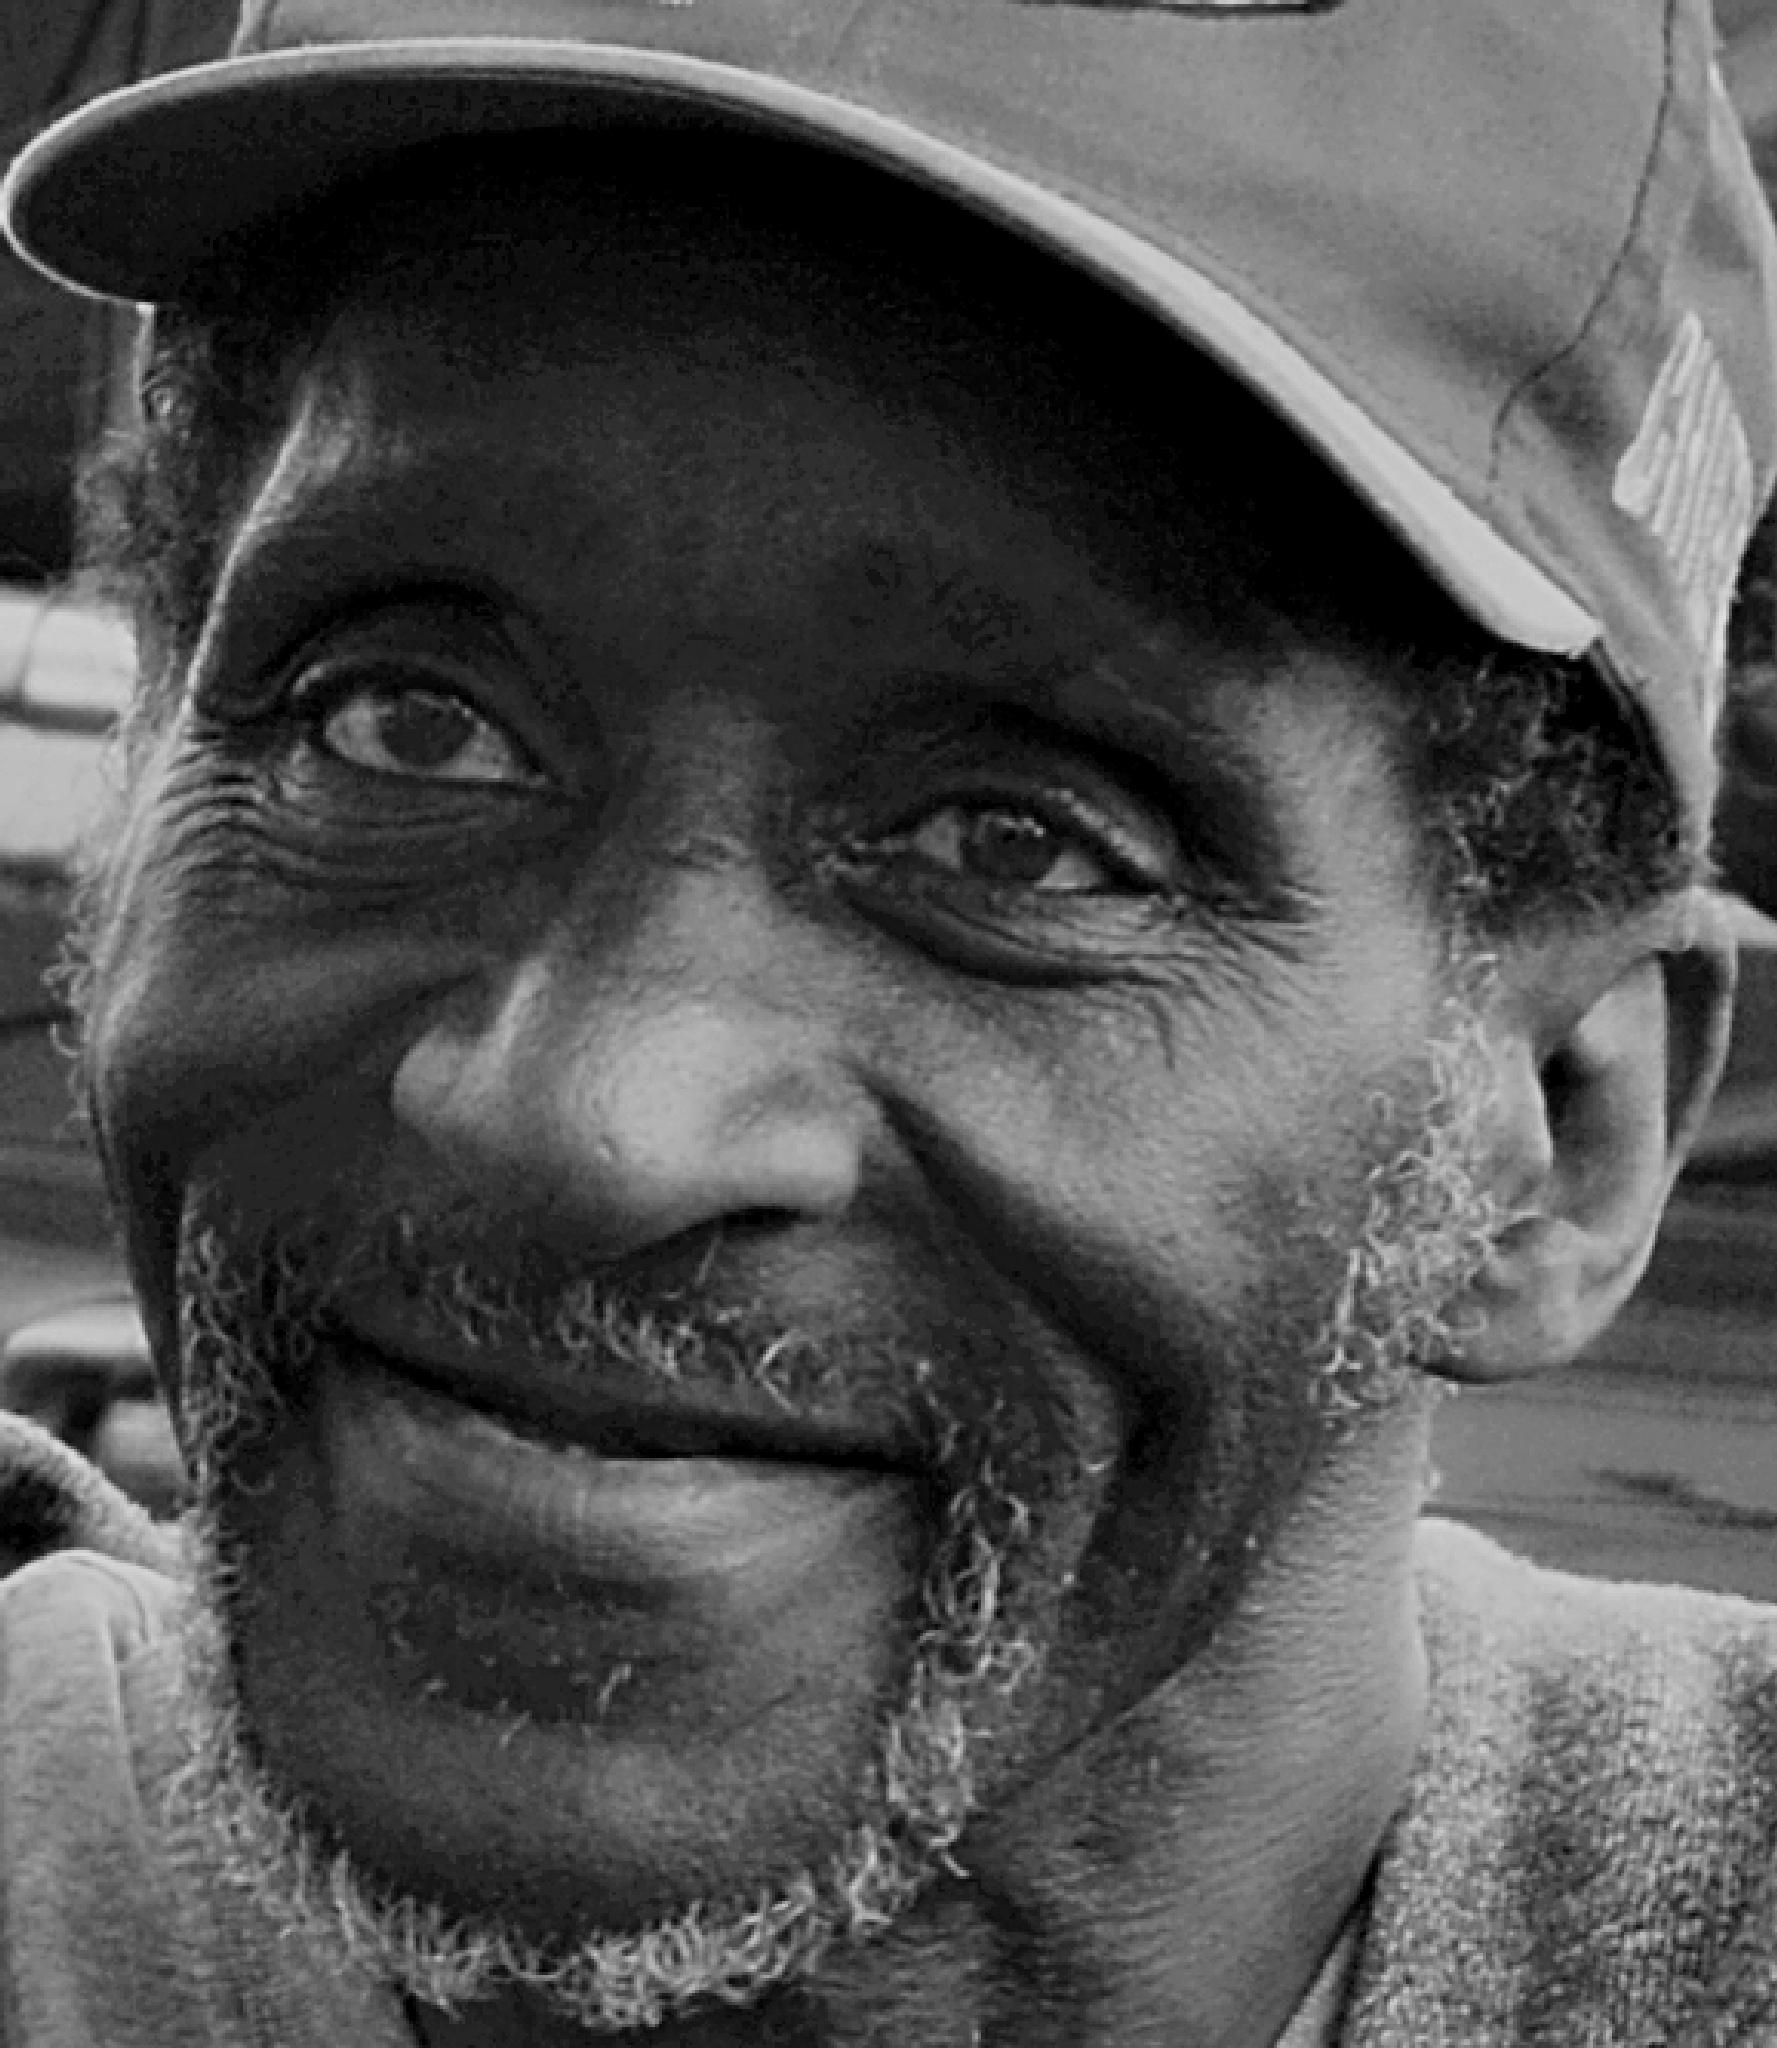 Faces of the Homeless - Cliff by Nemo